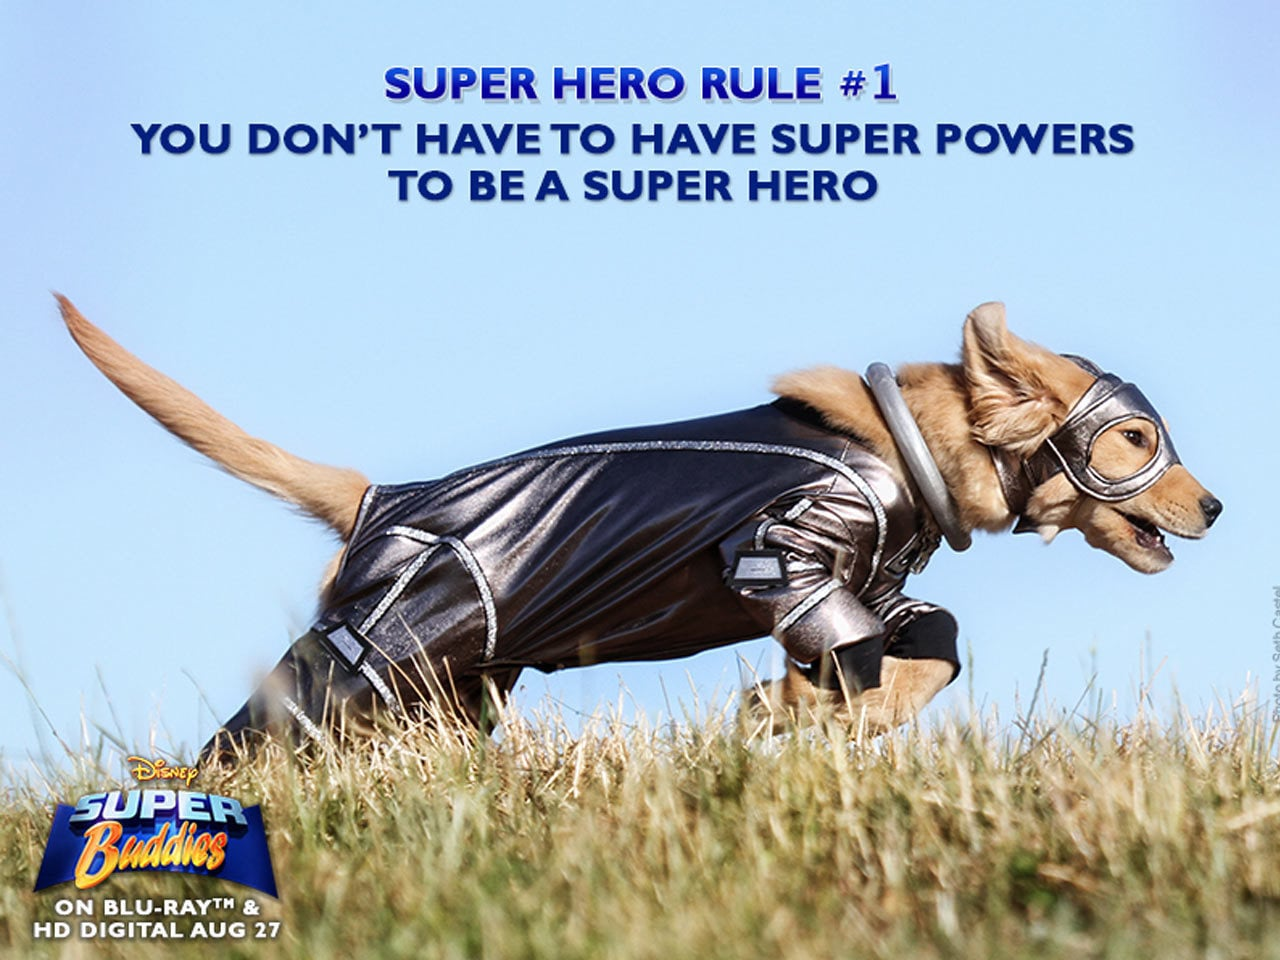 Super Hero Rules Gallery